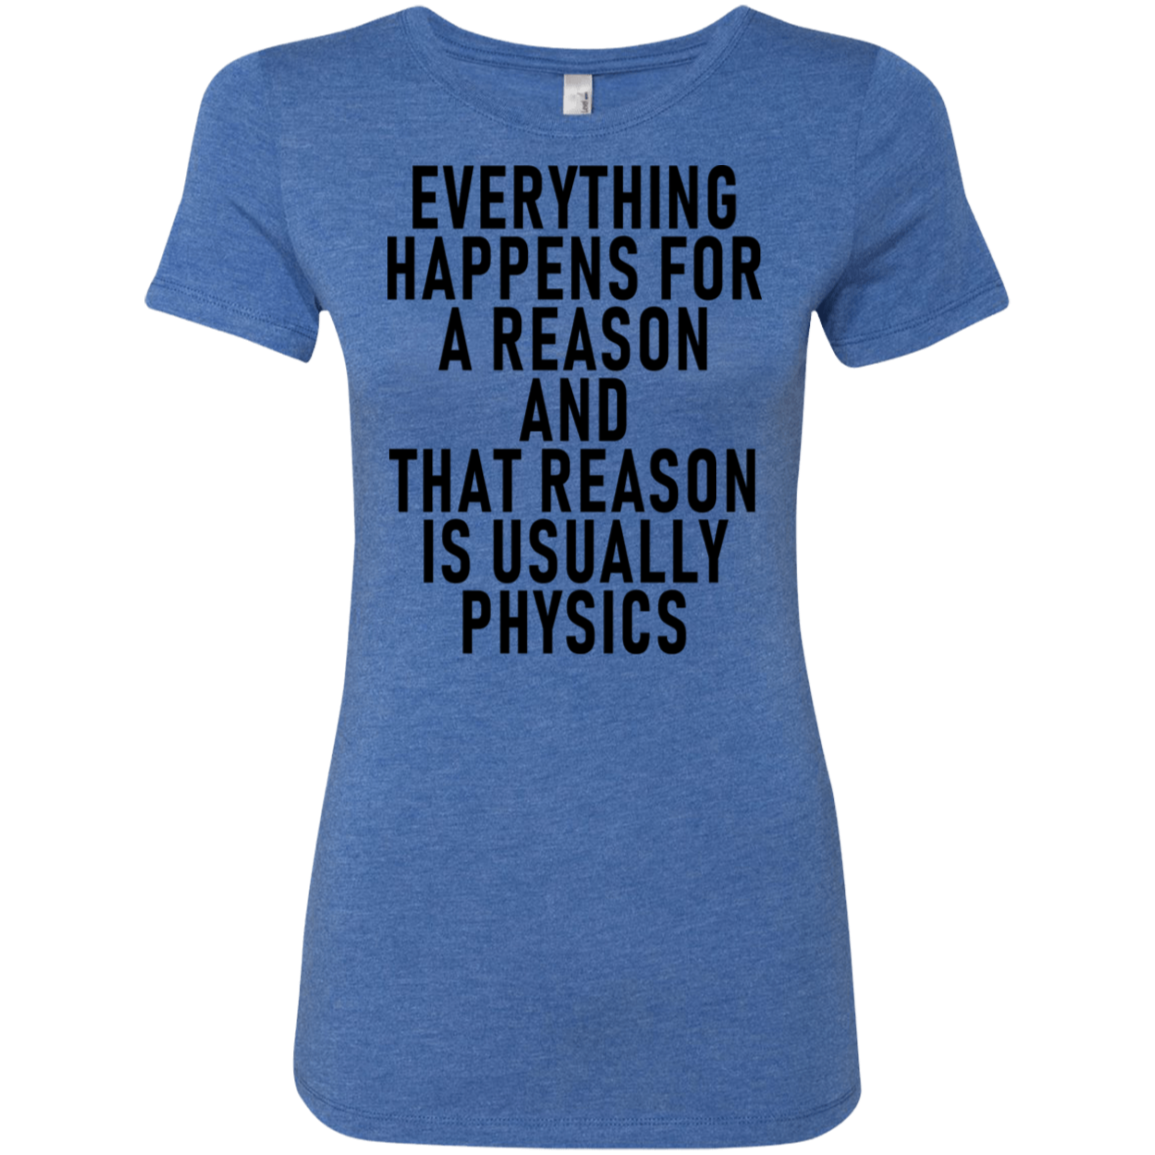 Everything Happens For A Reason And That Reason Is Usually Physics Women's Classic Tee